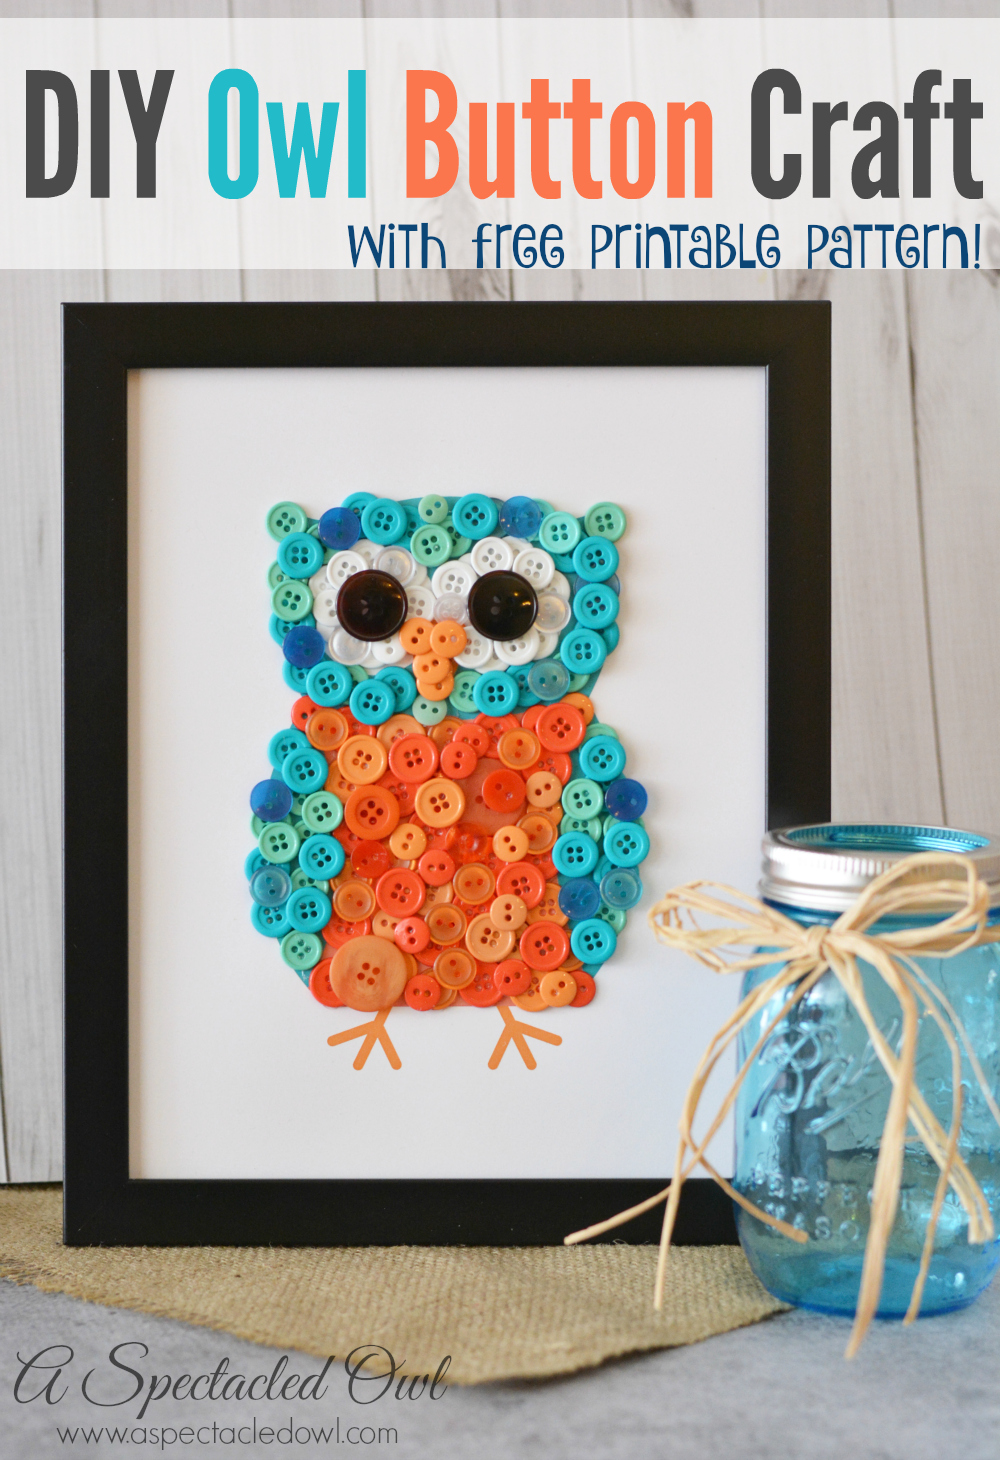 Diy Owl Button Craft A Spectacled Owl